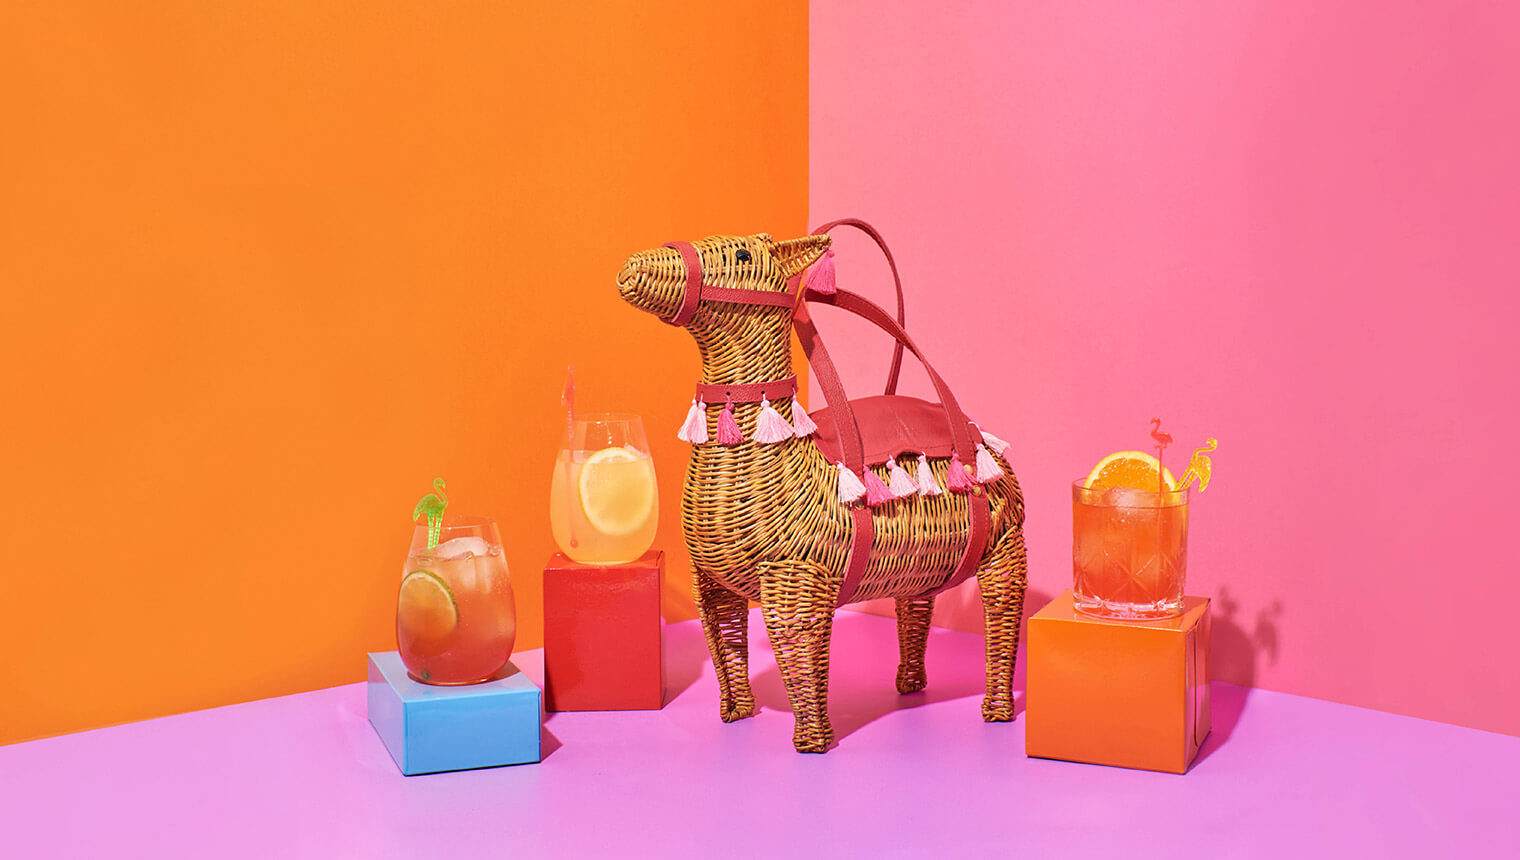 Bright orange and pink scene with llama shaped wicker handbag surrounded by cocktails